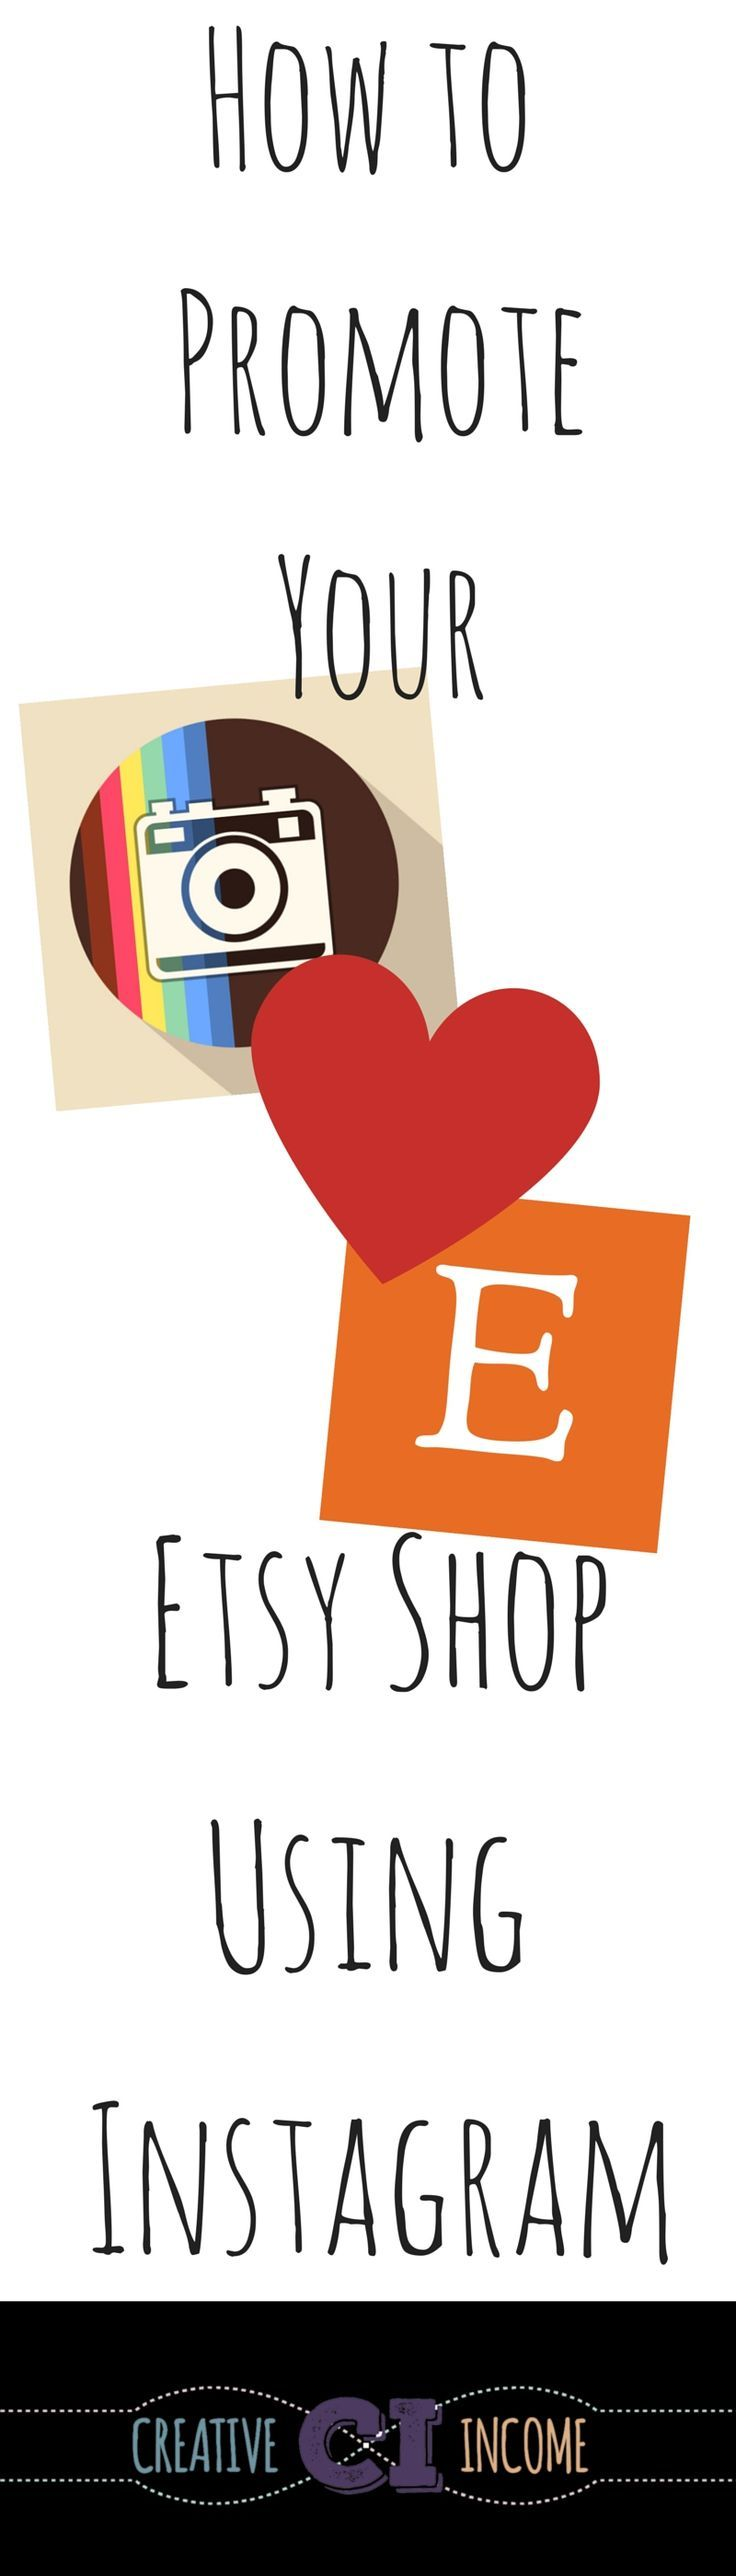 356 best Etsy-how to sell images on Pinterest | Business ideas ...